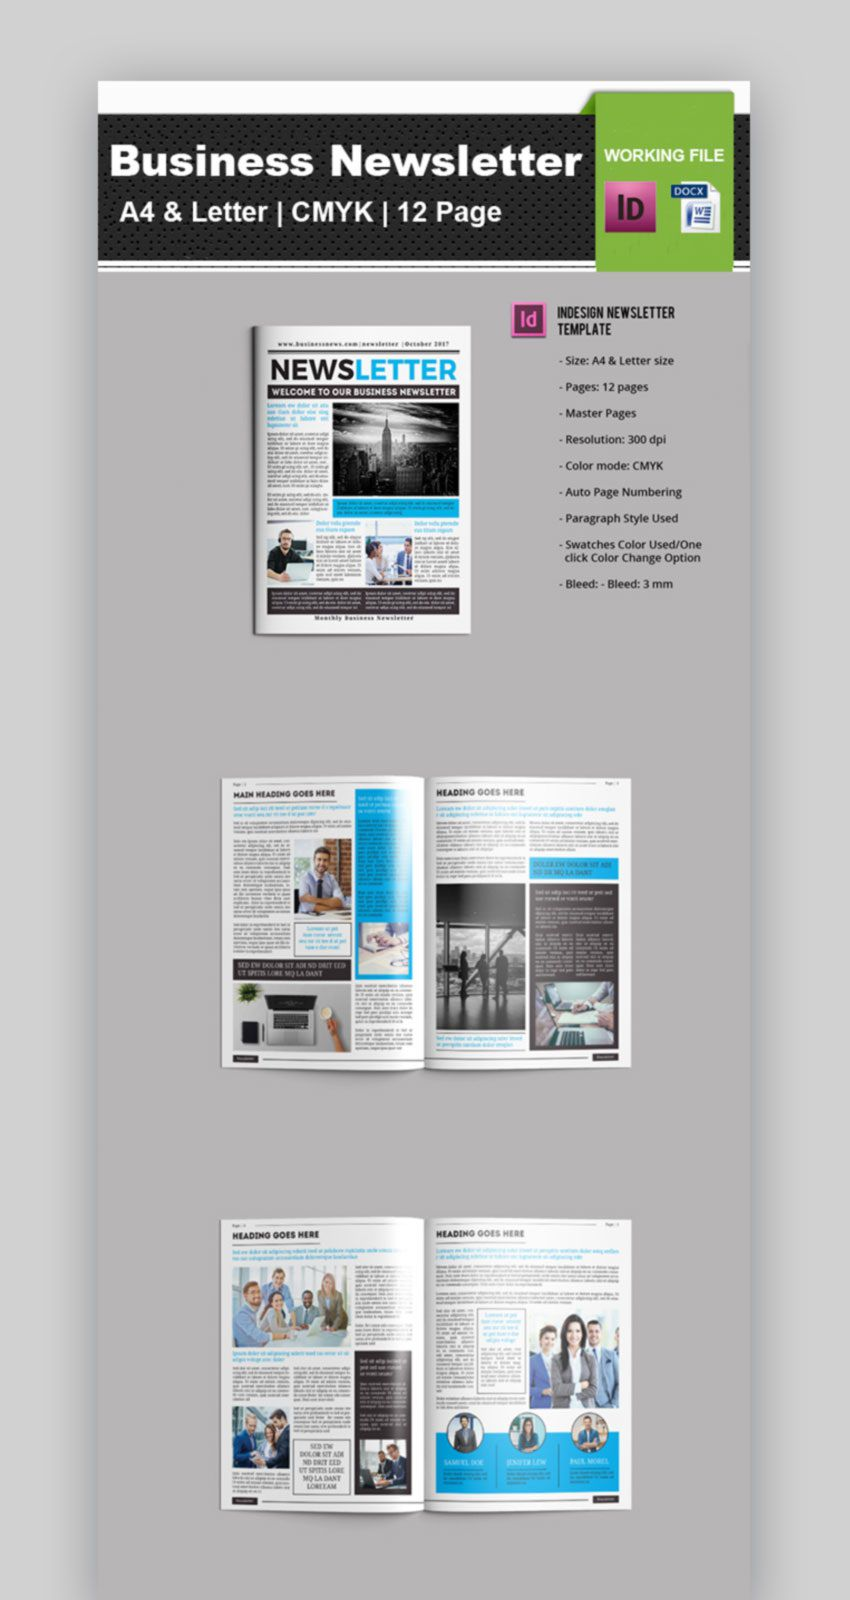 008 Remarkable Microsoft Newsletter Template Free Concept  Powerpoint School Publisher DownloadFull